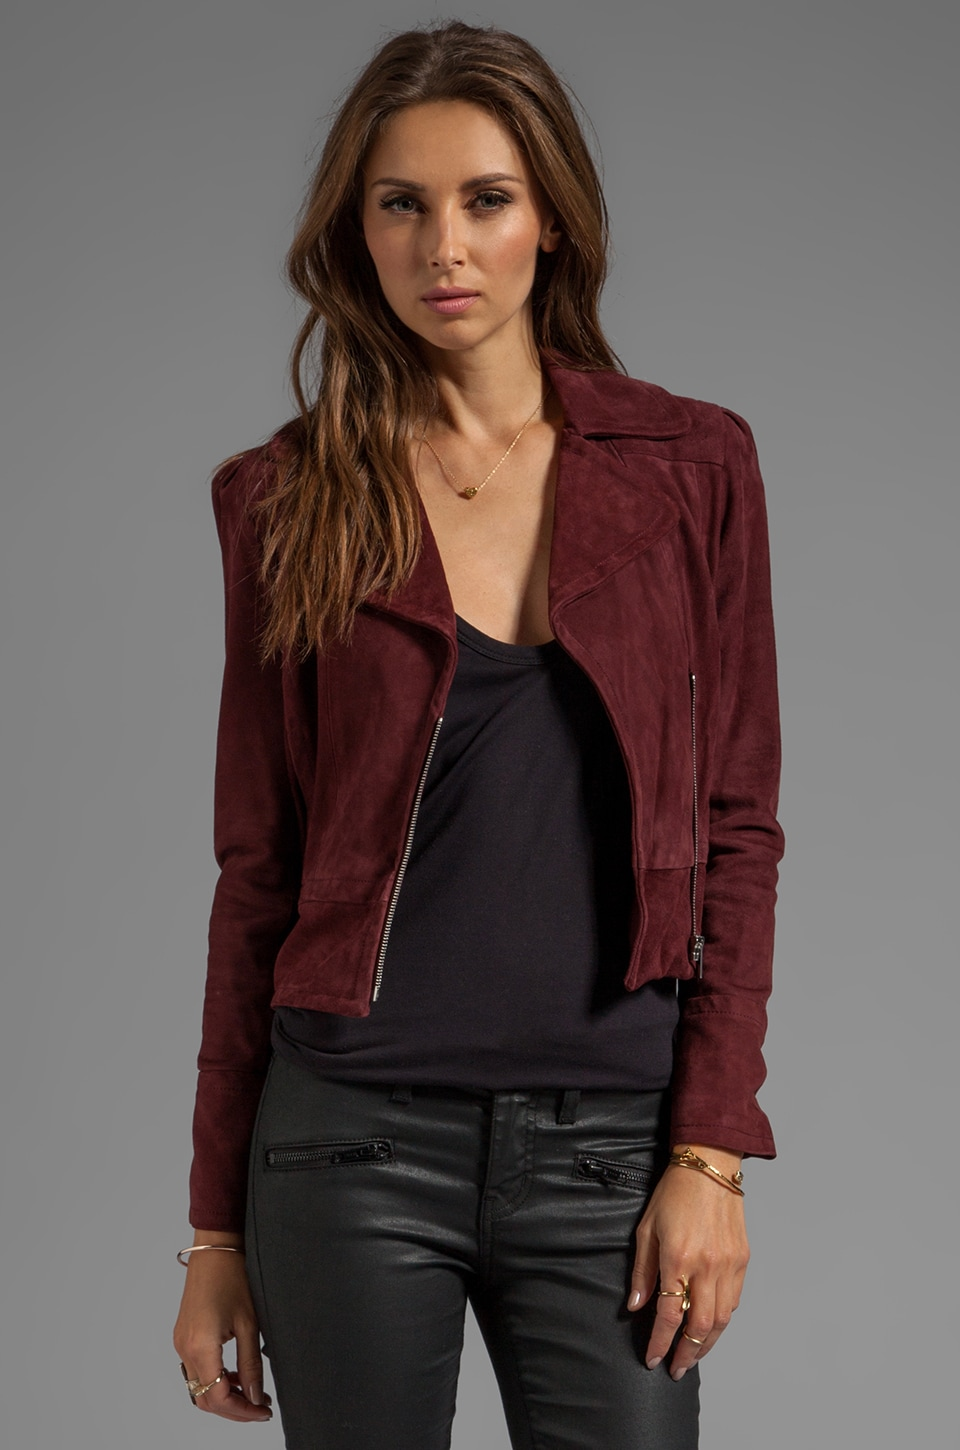 Diane von Furstenberg Kazara Jacket in Purple Rouge